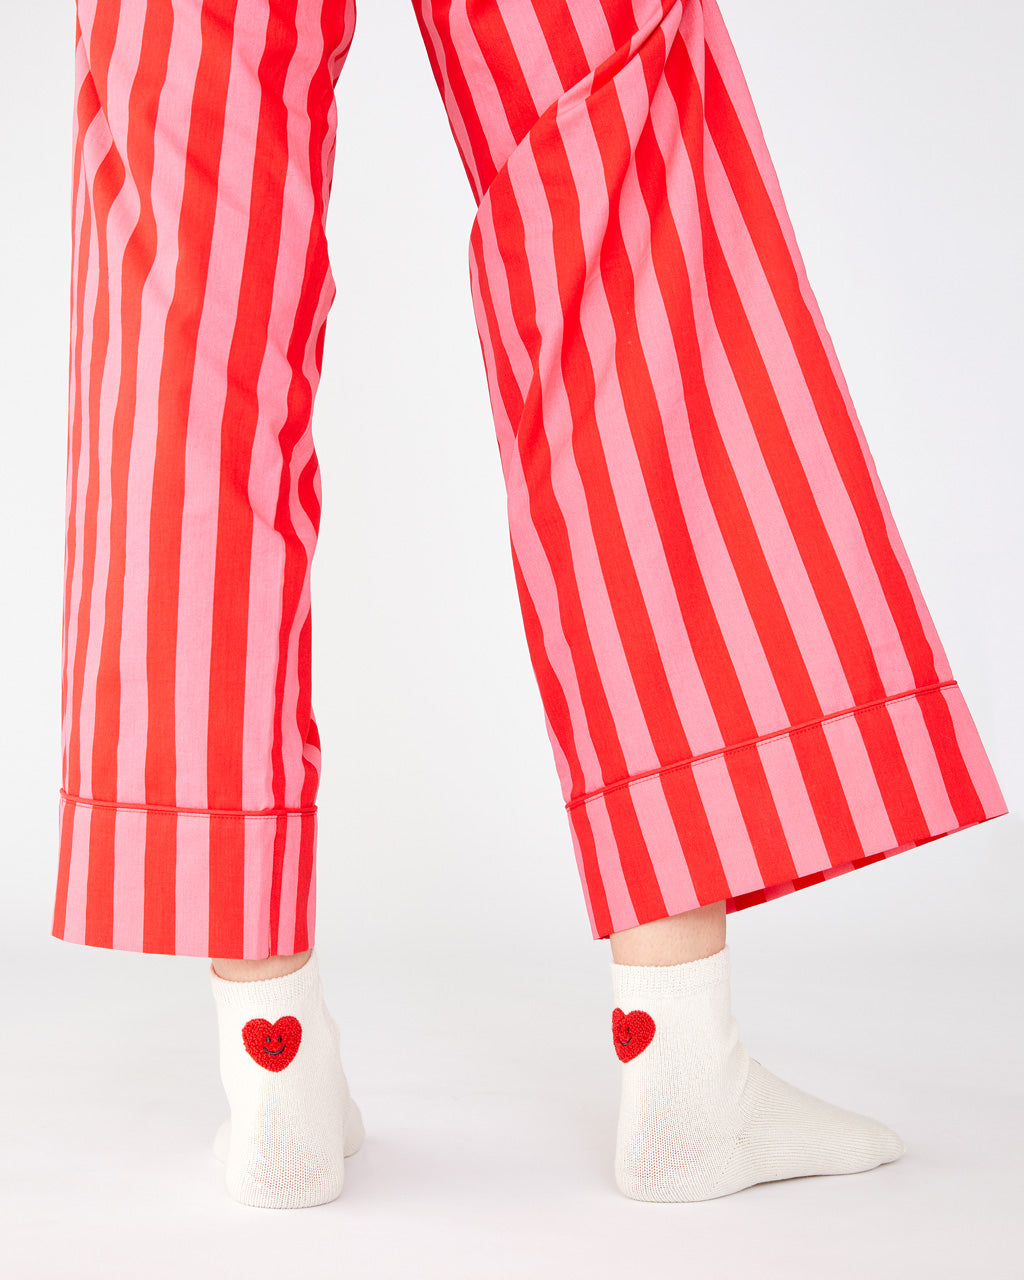 Cotton red and pink vertical stripe leisure pants with a relaxed leg